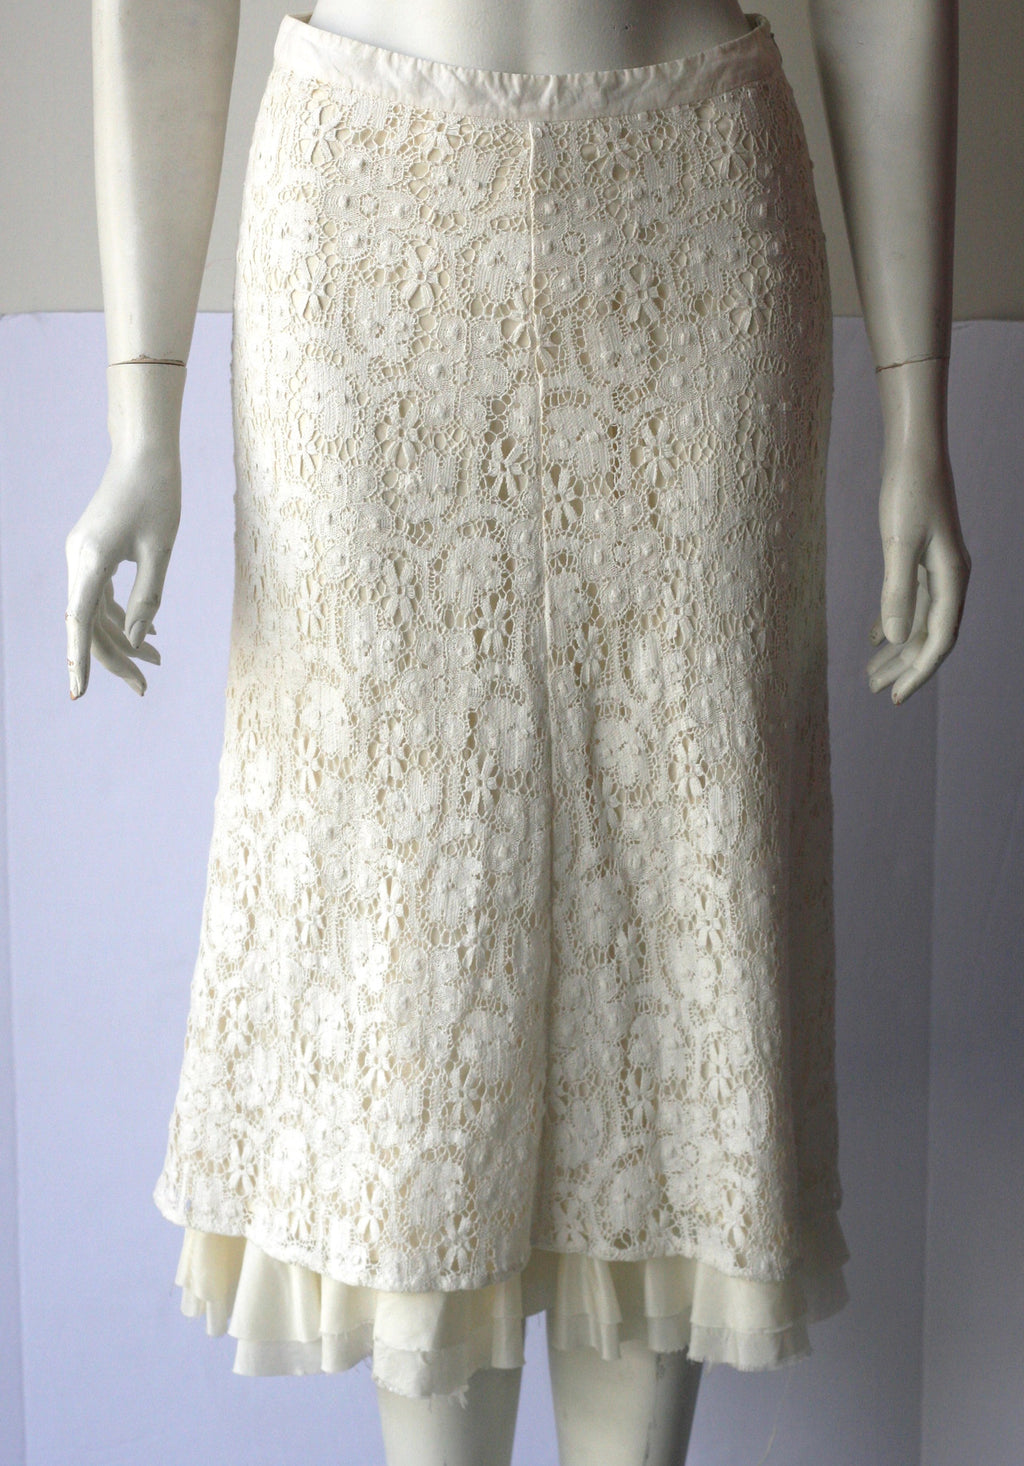 Banana Republic Cream Crochet Midi Skirt - Joyce's Closet  - 1